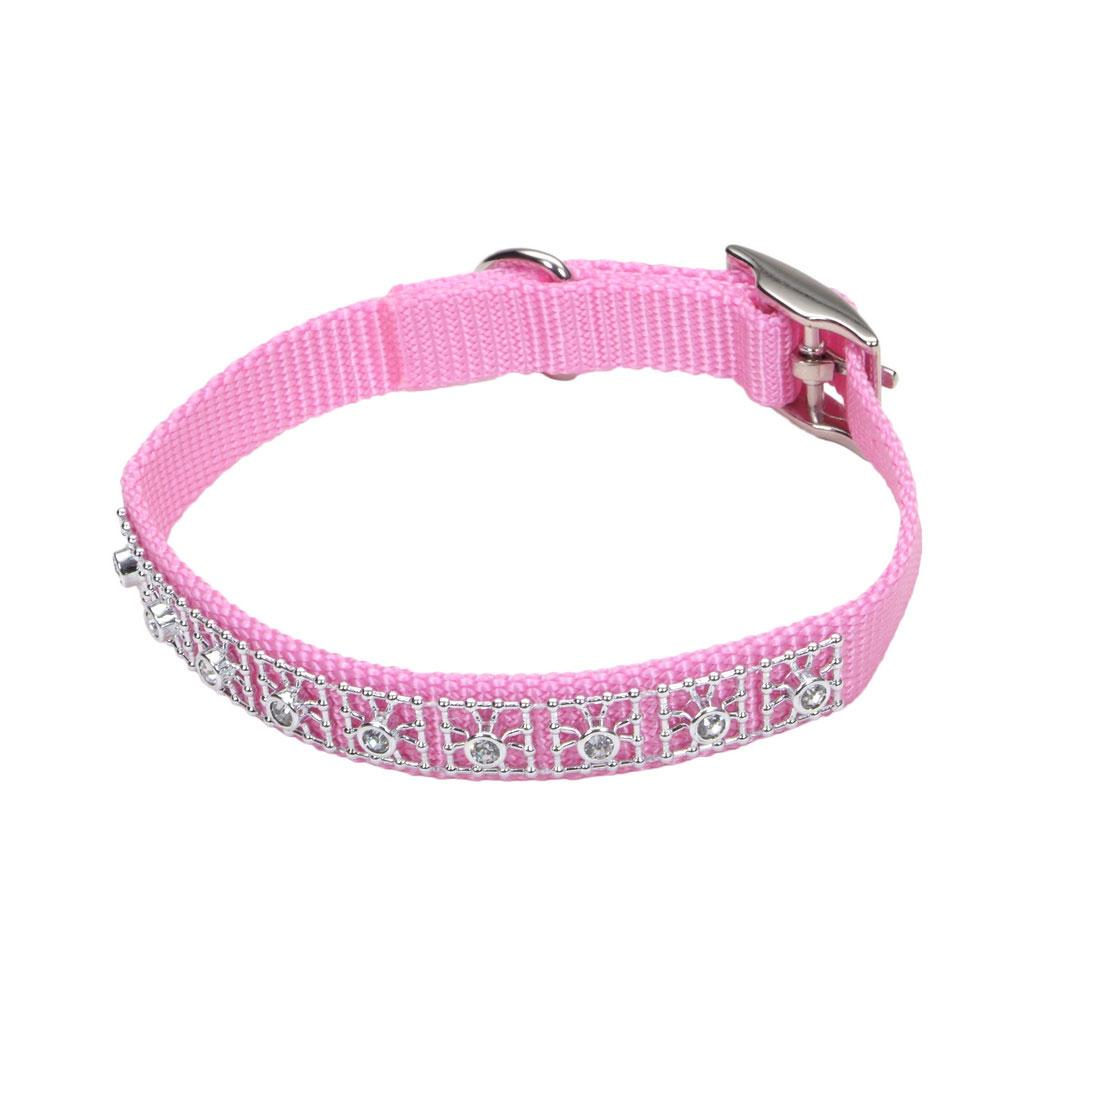 Coastal Jeweled Dog Collar, Pink Bright Image